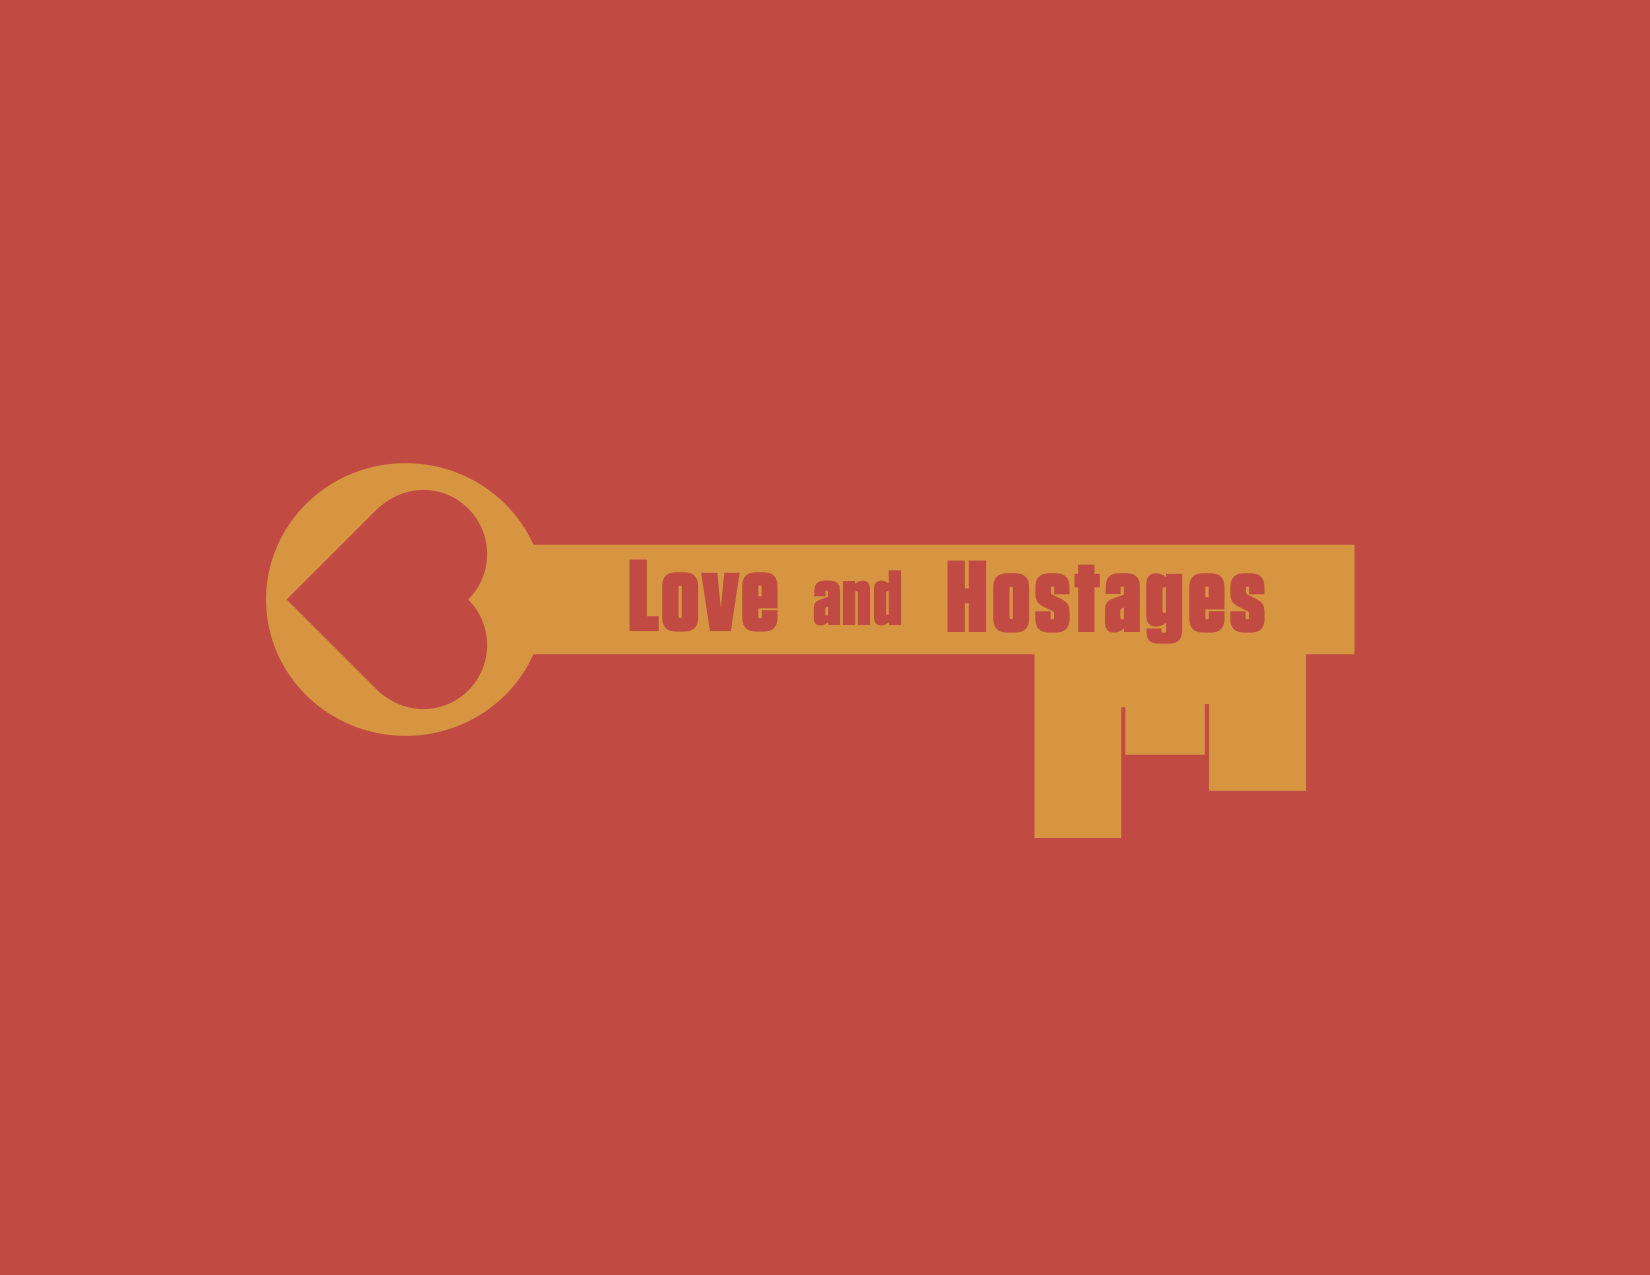 Love and hostages Horz pic.jpg